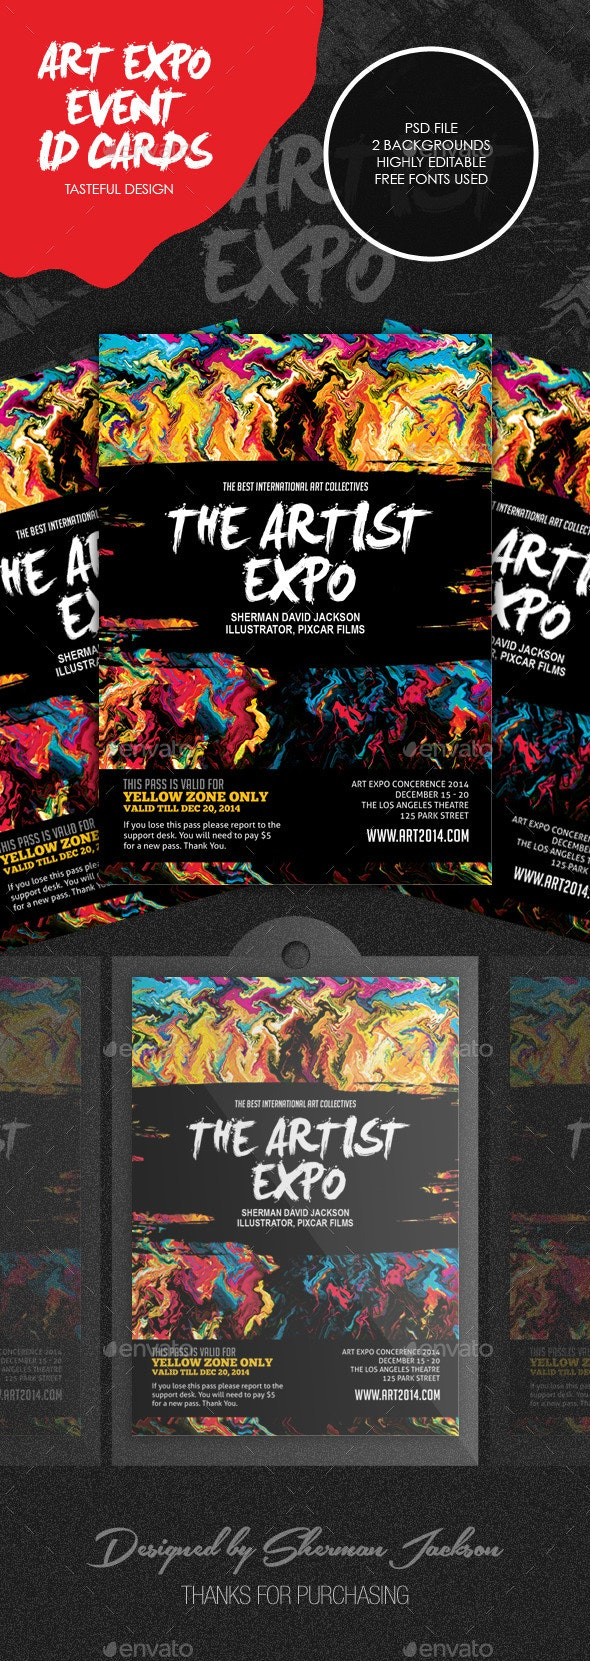 Art Event, Show & Expo ID Badge